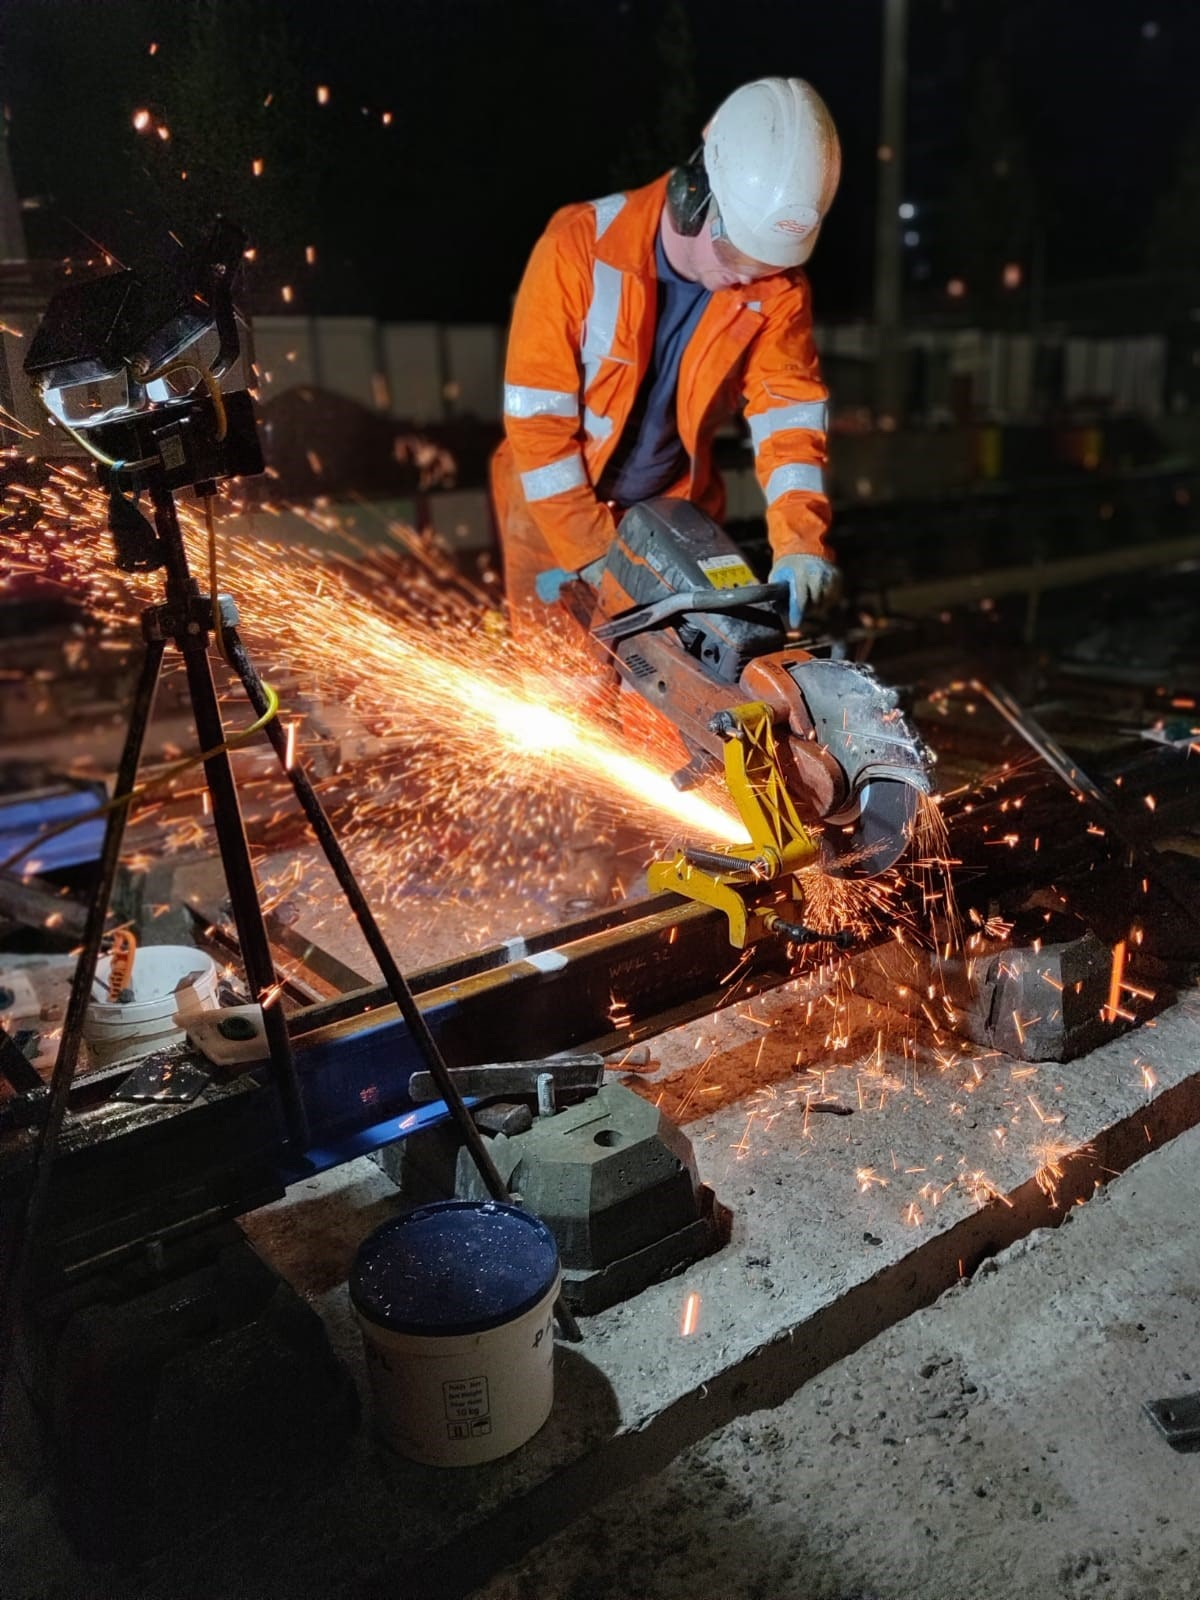 Midland Metro Alliance celebrates the last weld of Metro track in Centenary Square as phase one construction enters final stages